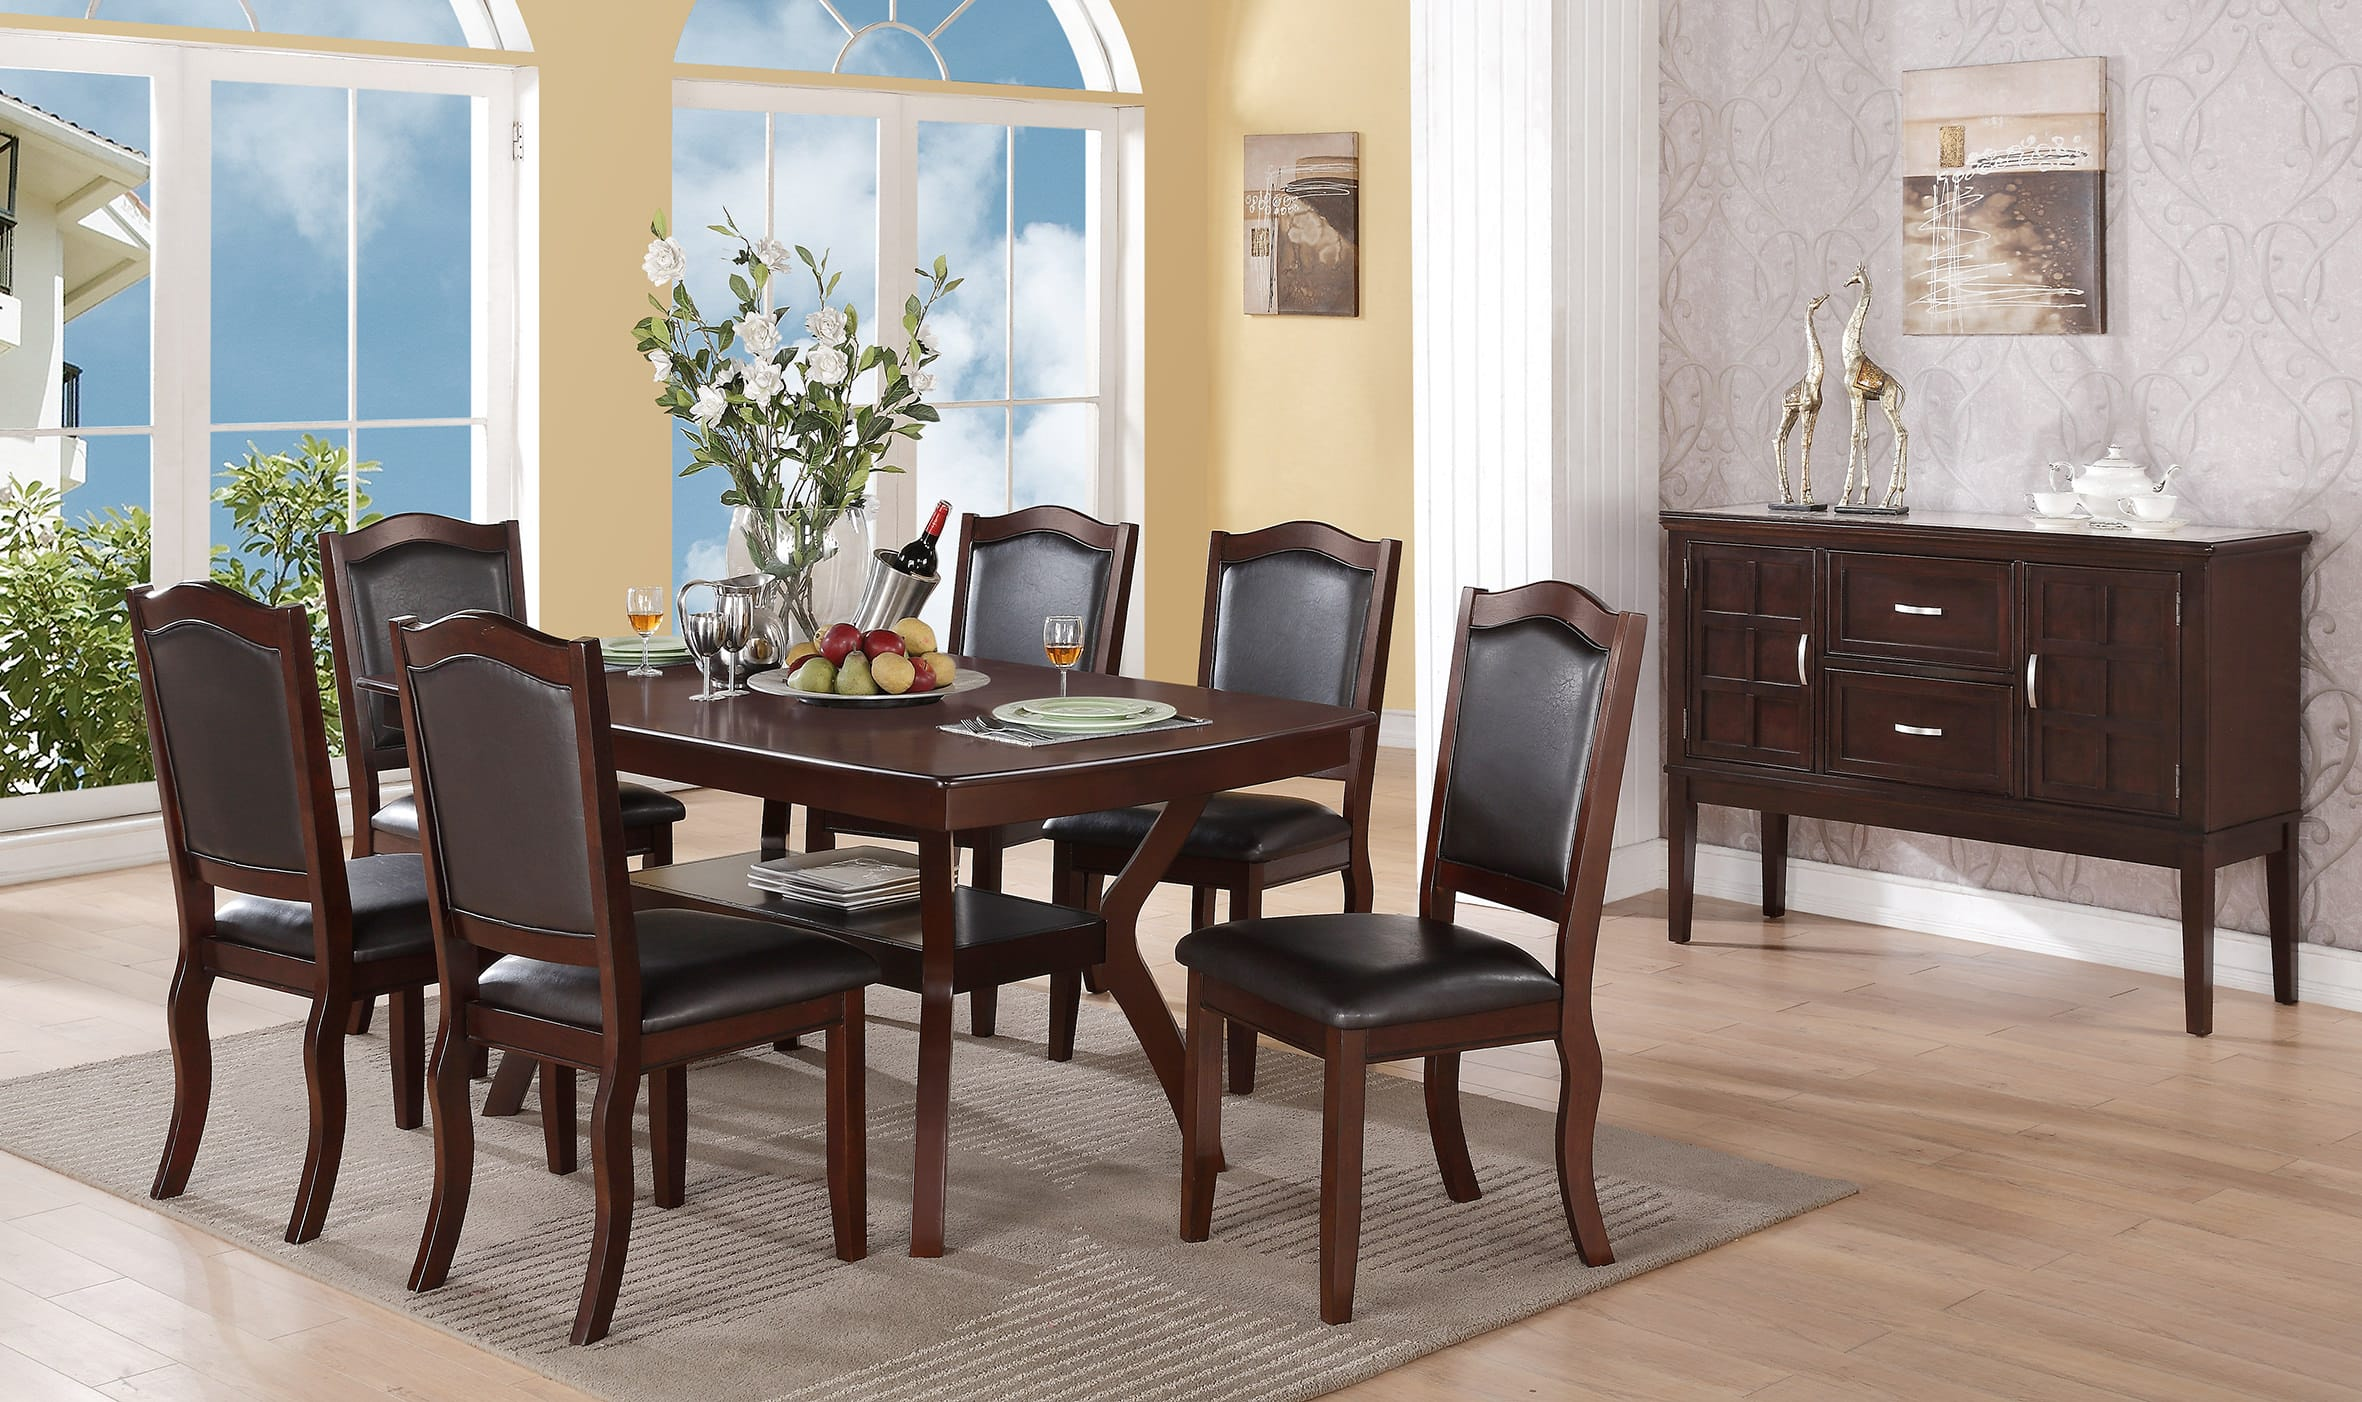 f1338 espresso dining chair (set of 2)poundex